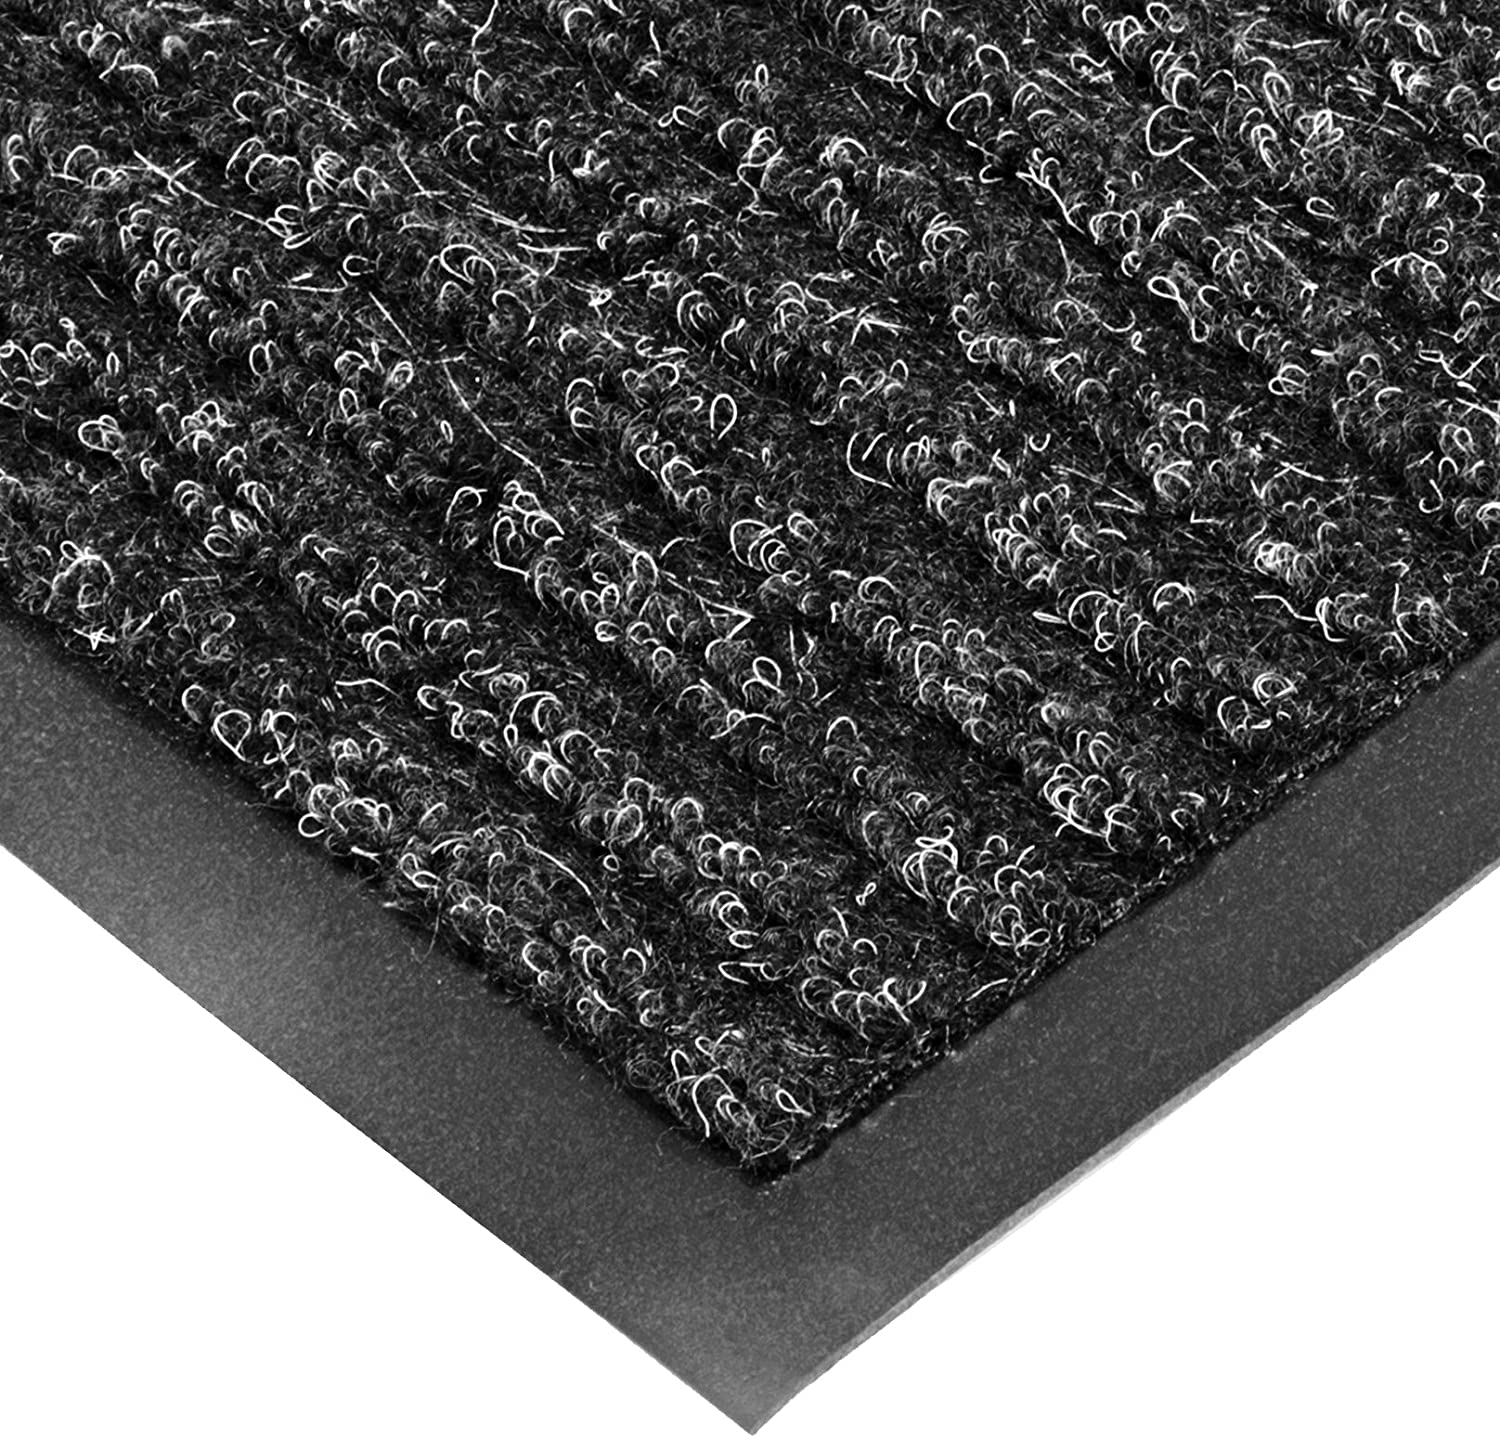 NoTrax T39 Bristol Ridge Scraper Carpet Mat, for Wet and Dry Areas, 2' Width x 3' Length x 3/8 Thickness, Midnight Superior Manufacturing Group Inc T39S0023CH